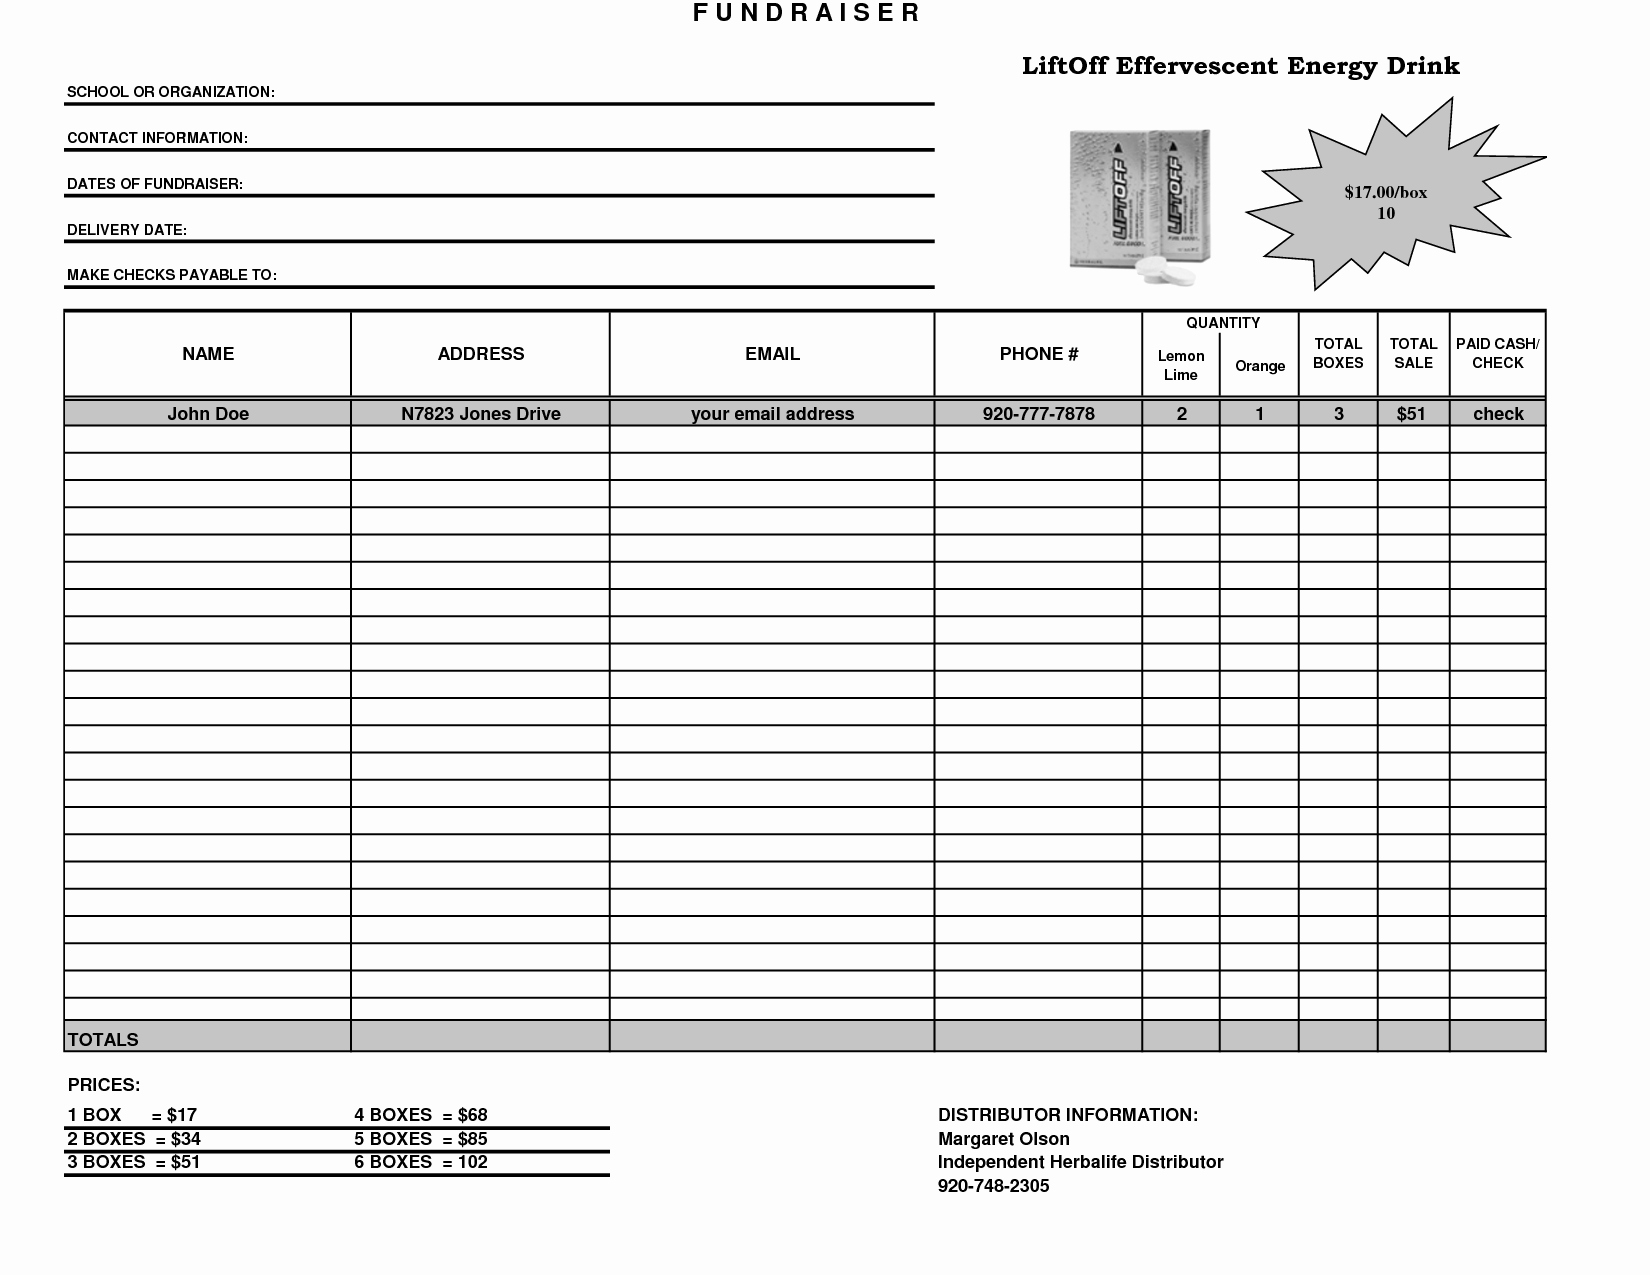 Order form Template Excel Lovely Fundraiser Template Excel Fundraiser order form Template